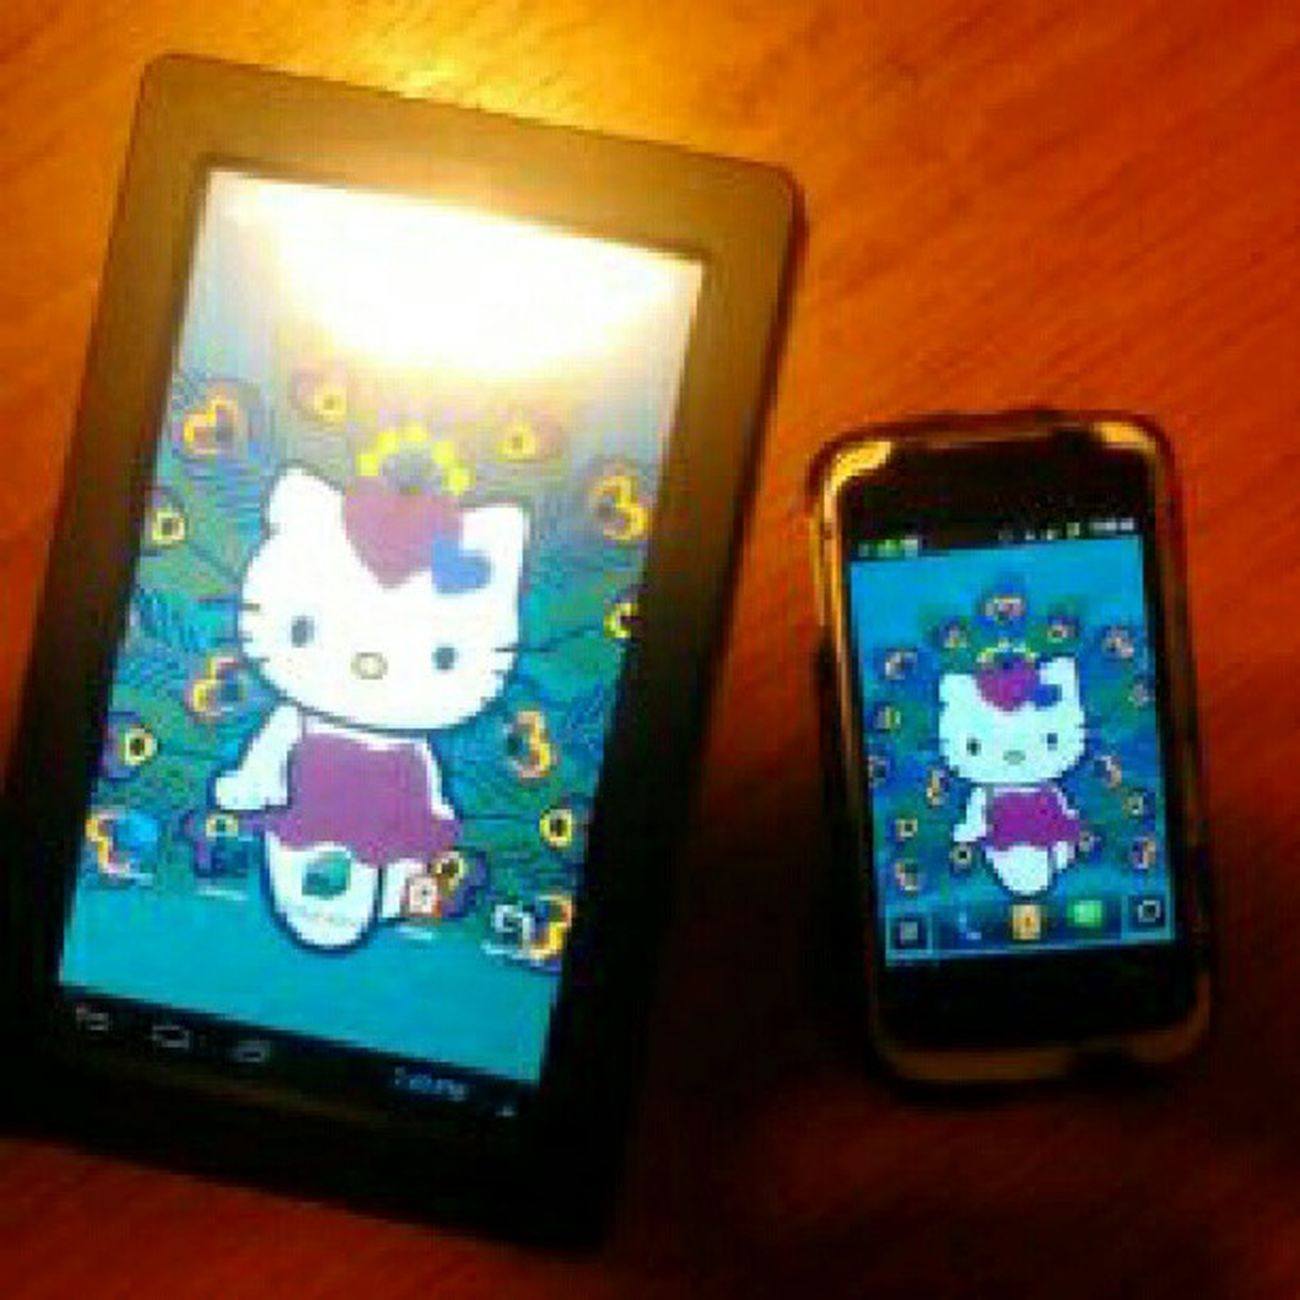 Oh cute. They match. #tablet #phone #android Android Phone Tablet Hellokitty Sanrio Hellokittyjunkie